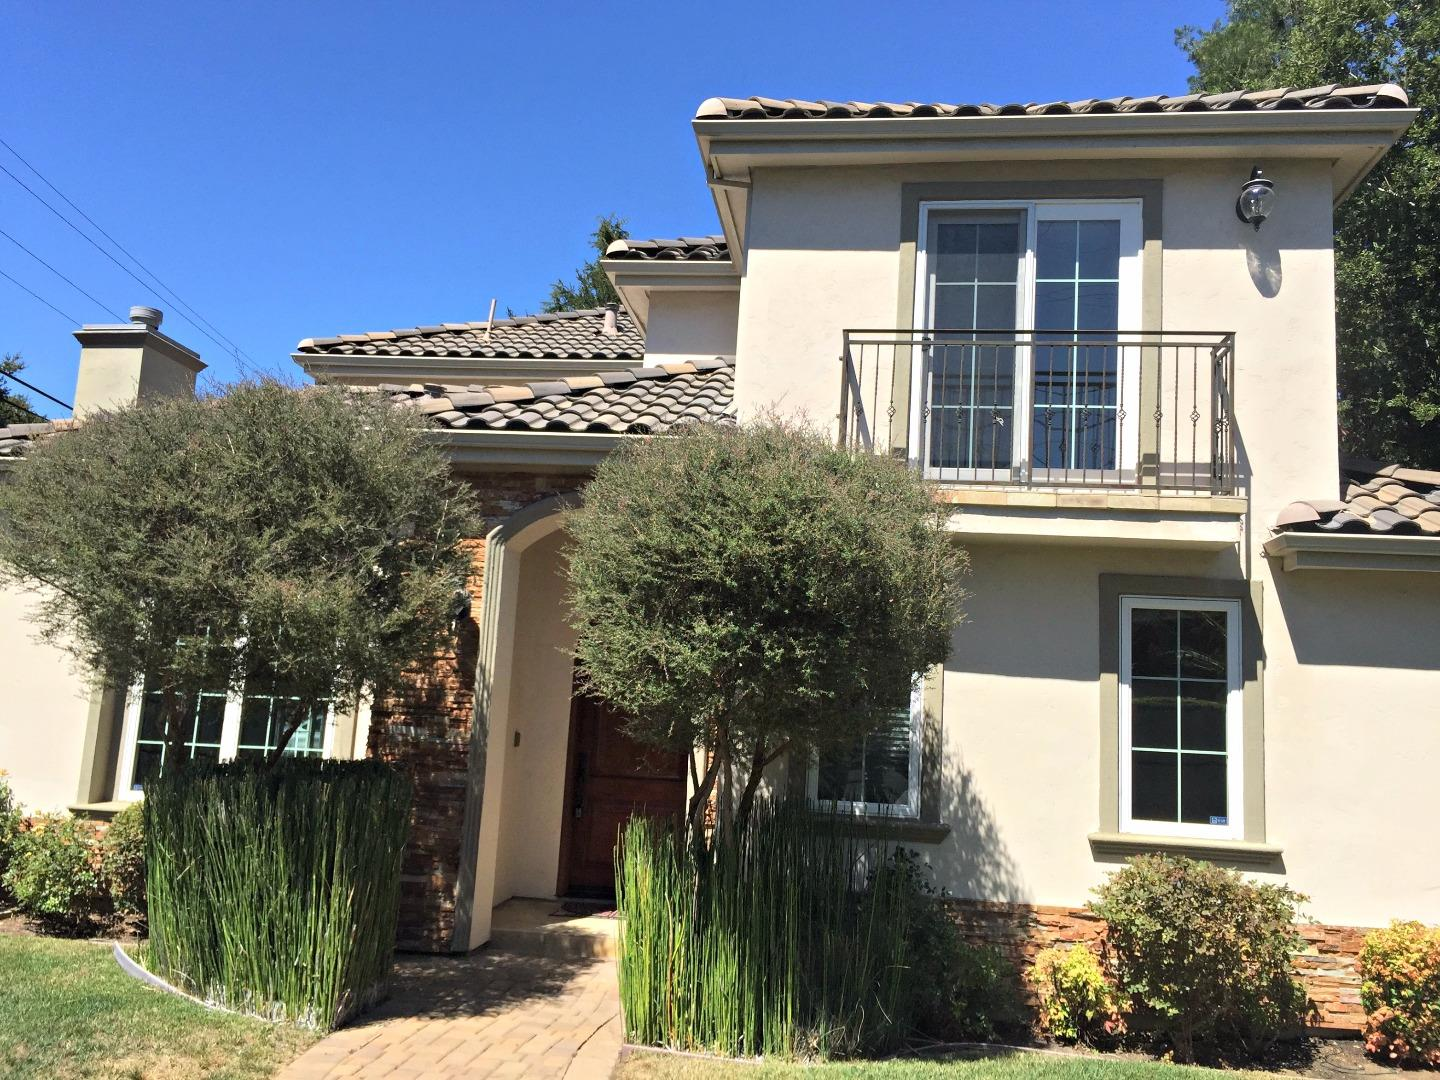 Single Family Home for Rent at 151 Giffin Road Los Altos, California 94022 United States